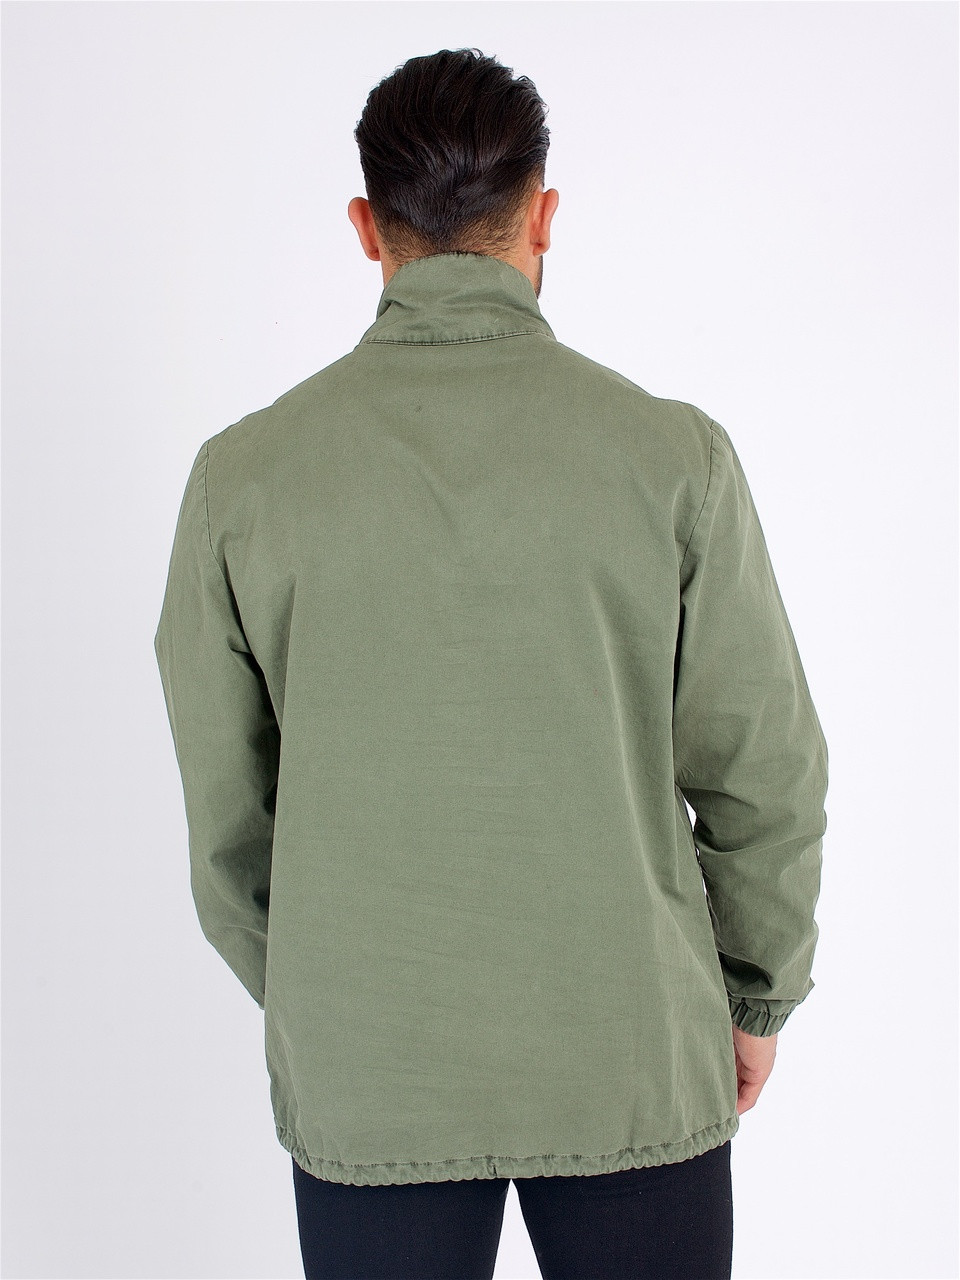 Khaki Front Pocket Full Sleeve Jacket